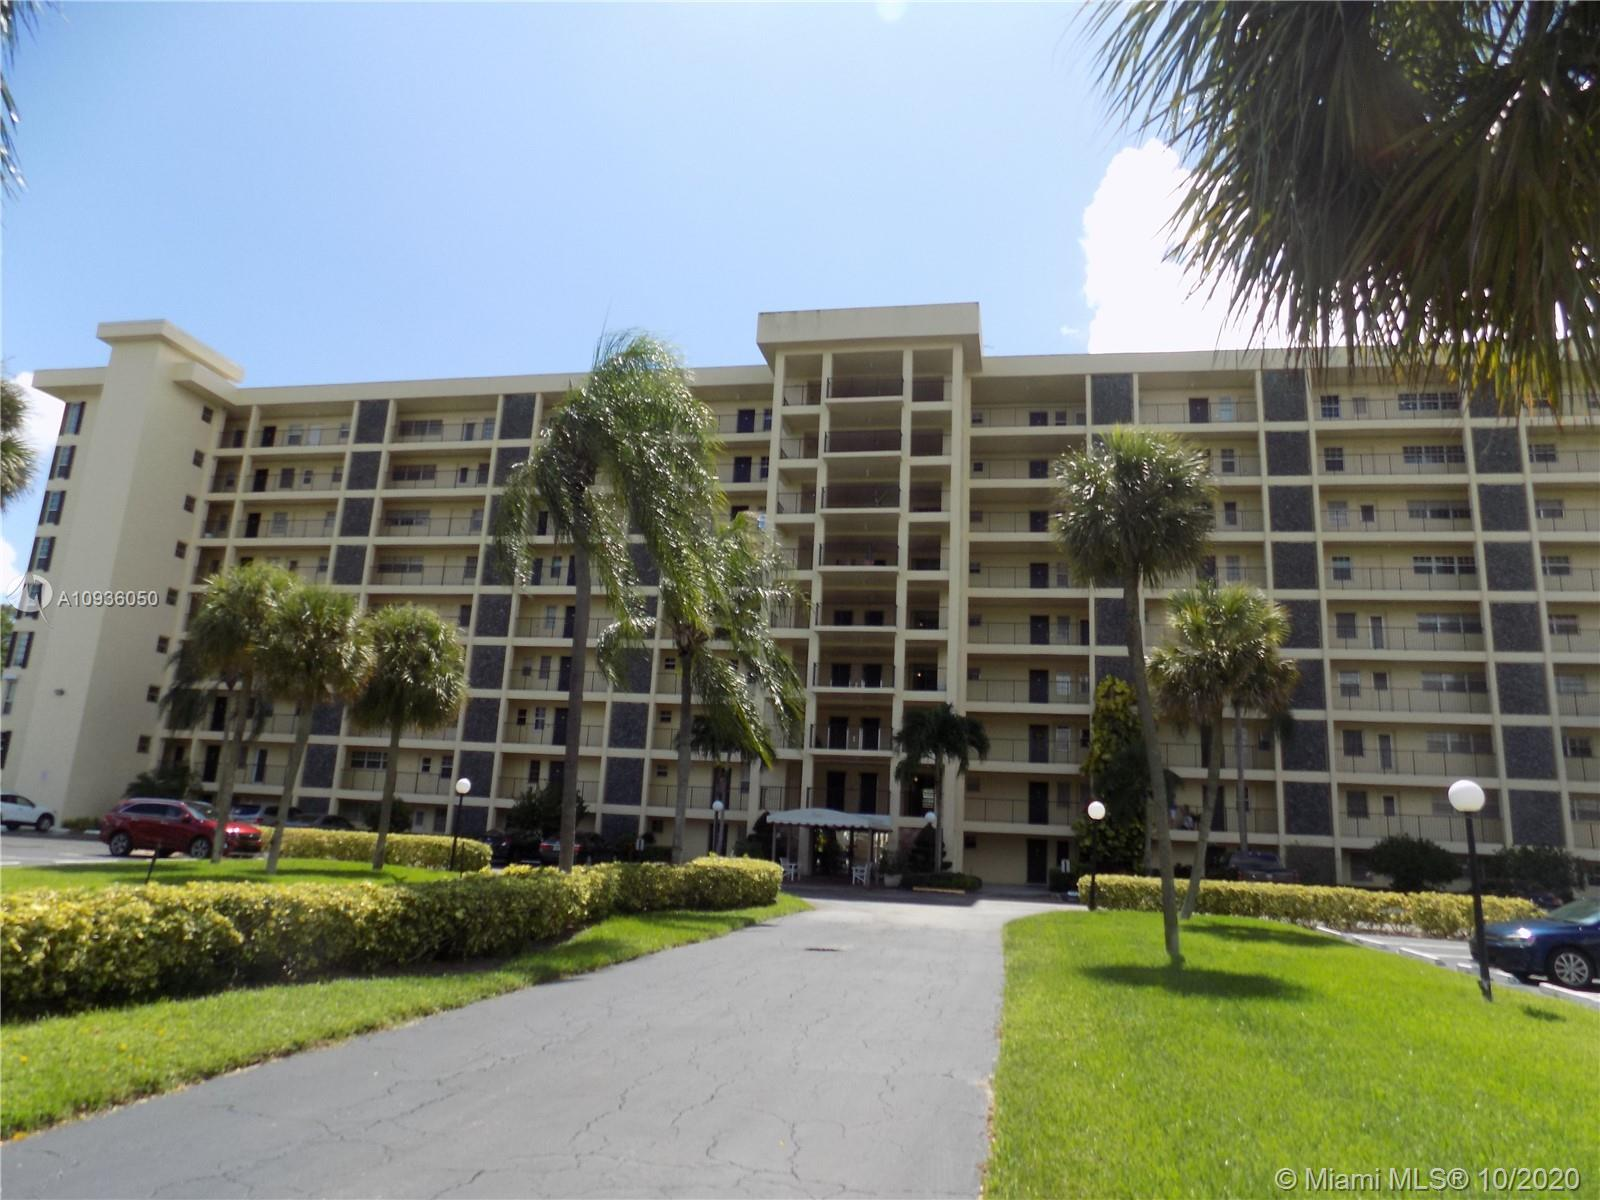 Great remodeled corner unit apartment in palm Aire Country Club with panoramic golf view. Remodeled open kitchen with wood cabinets, granite counter tops, remolded bathrooms, glass enclosed balcony for extra space under air, nicely decorated. Condo requires 10% down and one year upfront of maintenance held by the association for the first 3 years of ownership. Near shops, restaurants, main highways and beaches.